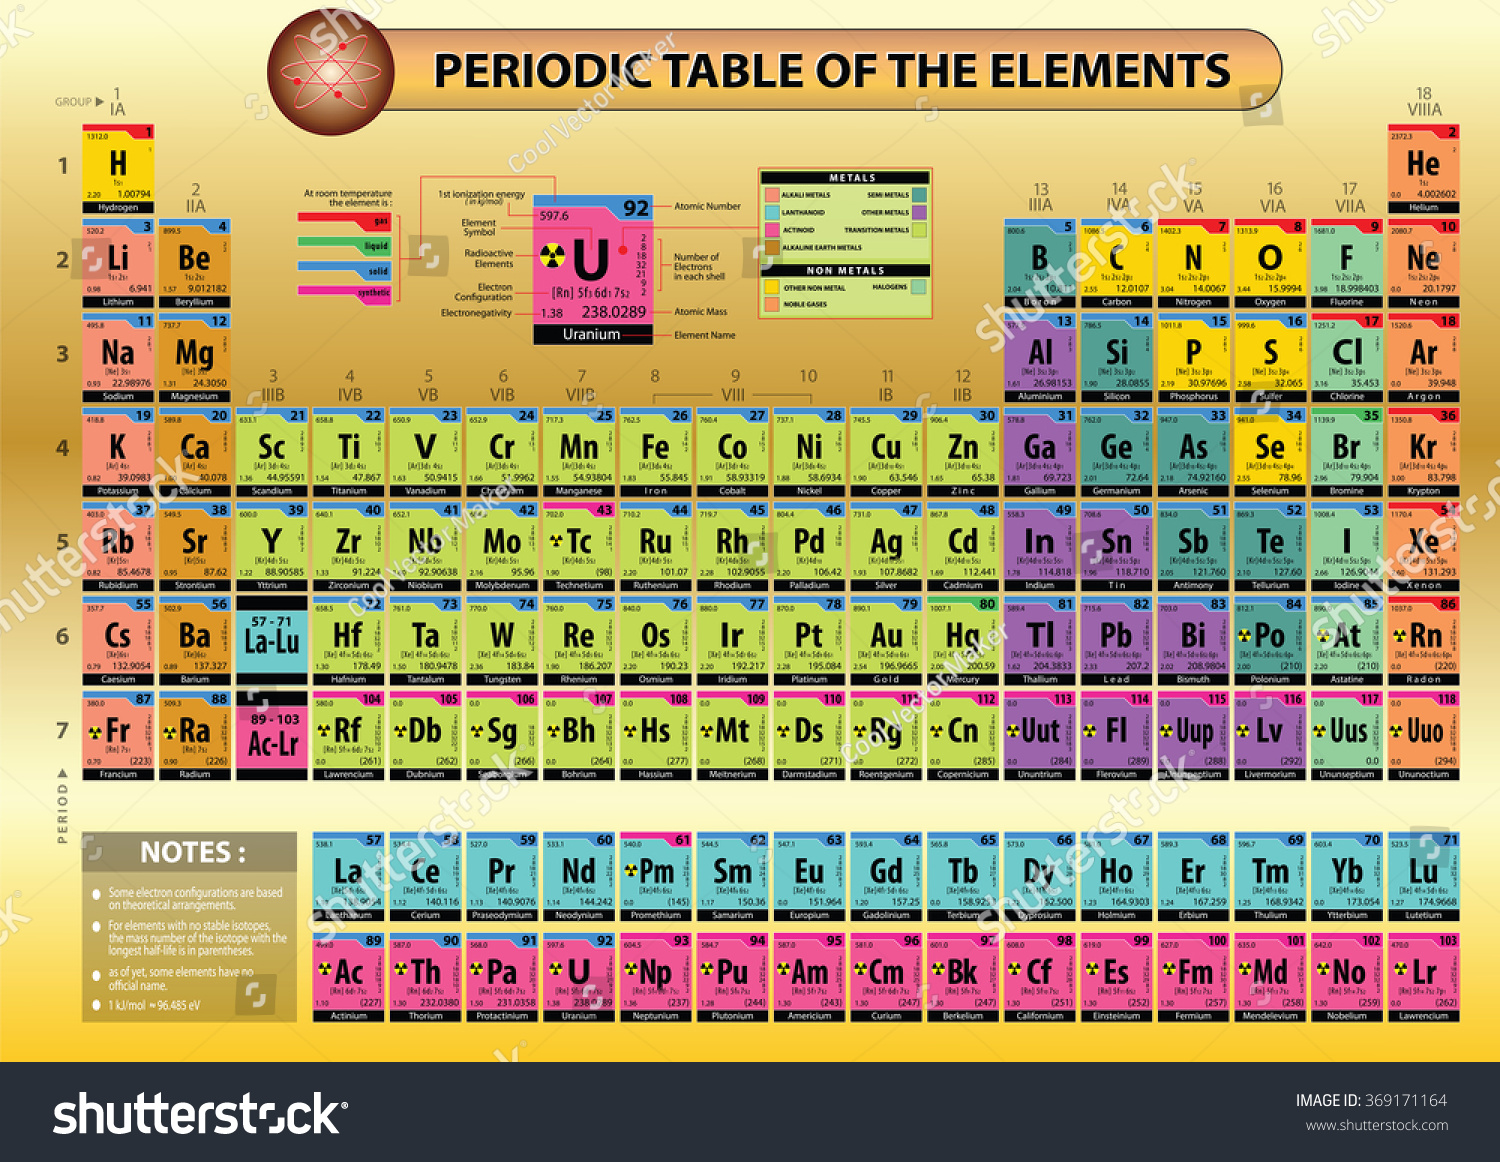 Periodic table elements element name element stock vector periodic table of elements with element name element symbols atomic number atomic gamestrikefo Image collections